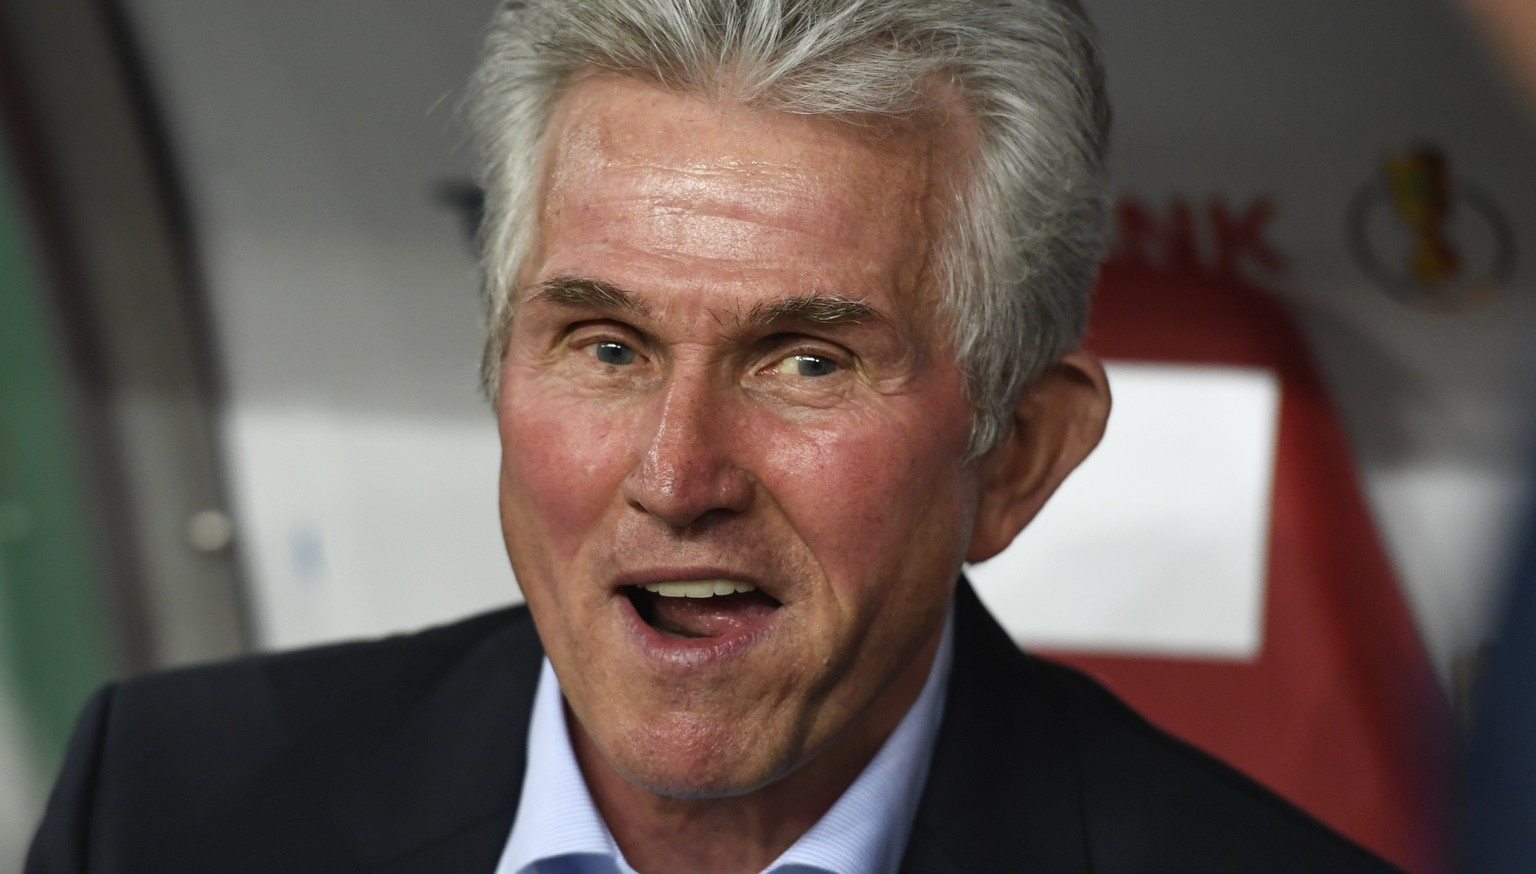 epa06289097 Bayern's head coach Jupp Heynckes reacts before the German DFB Cup soccer 2nd round match between RB Leipzig and FC Bayern Munich in Leipizg, Germany, 25 October 2017.  EPA/FILIP SINGER ATTENTION: The DFB prohibits the utilization and publication of sequential pictures on the internet and other online media during the match (including half-time).